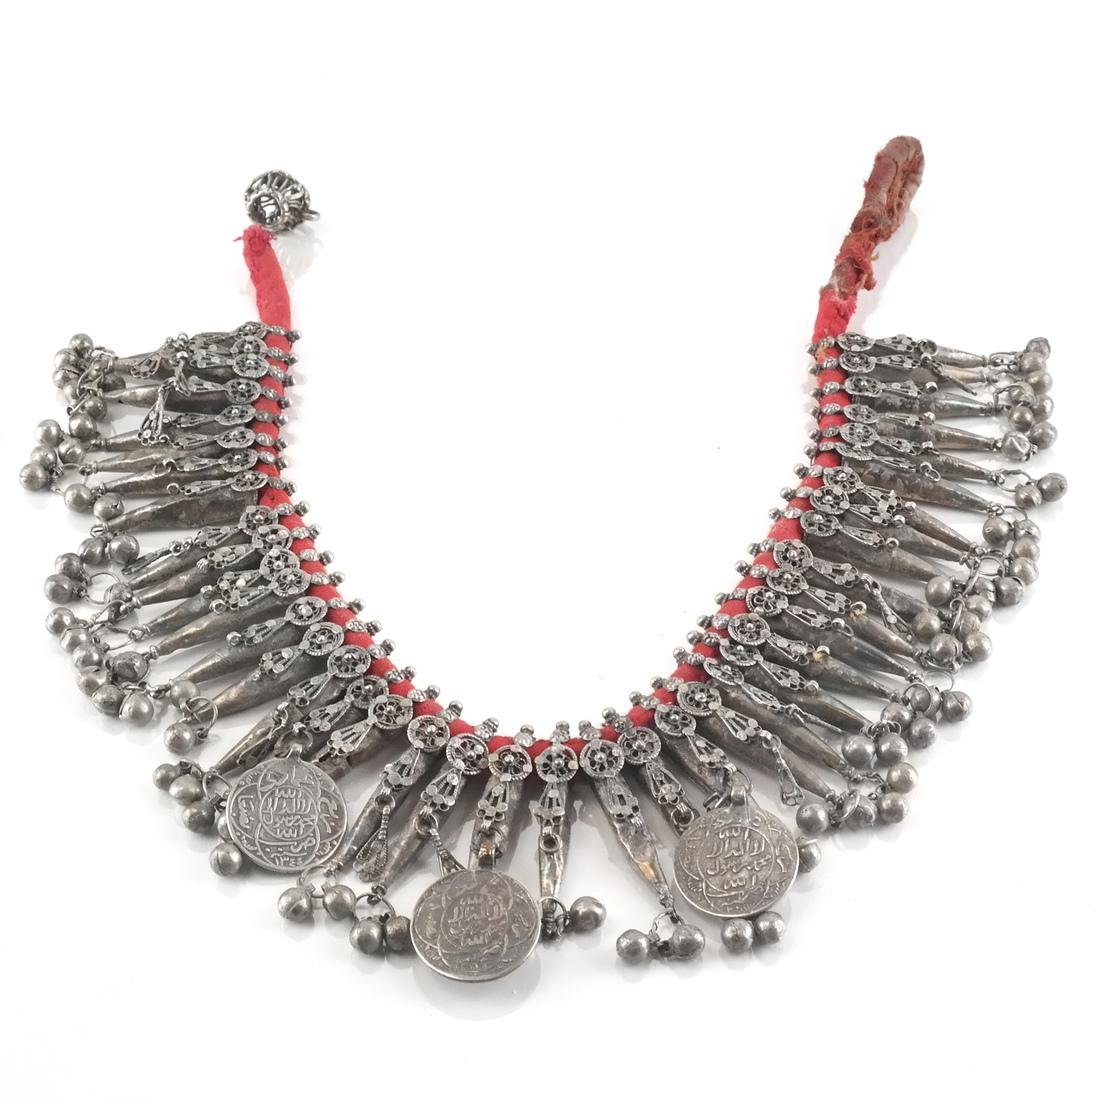 Silver Afghan/Central Asian Tassel & Coin Necklace